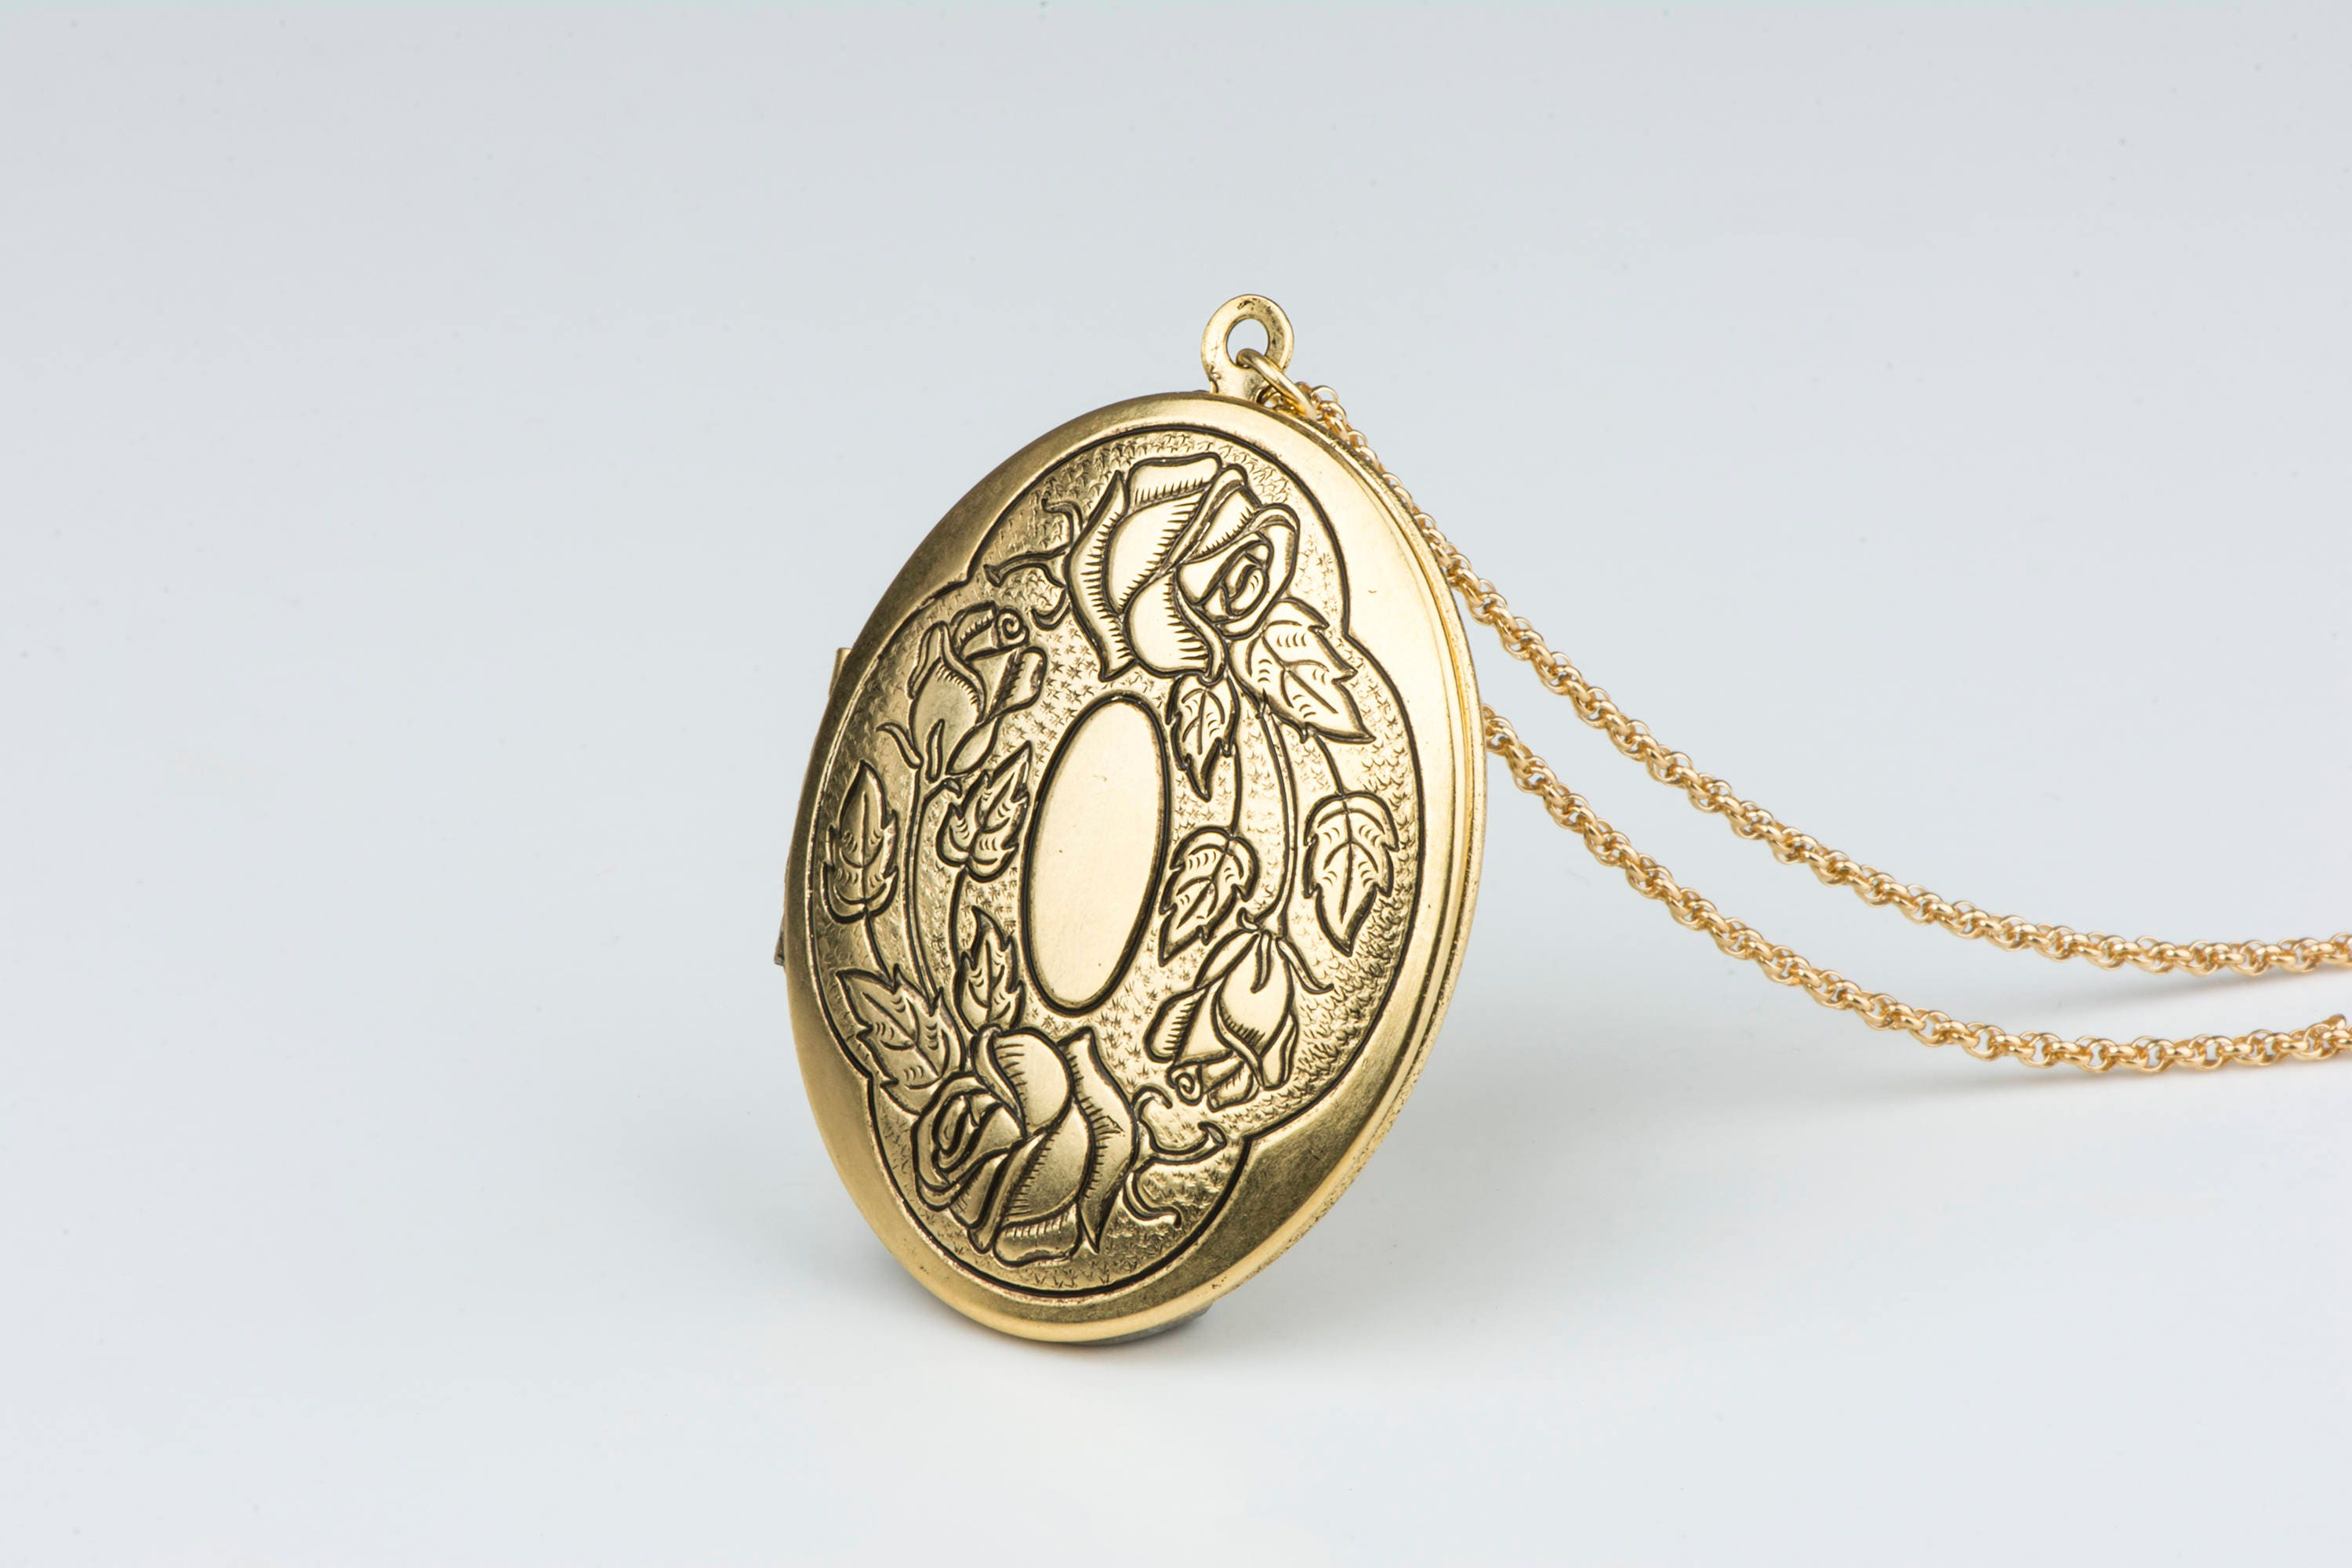 gold lockets robins fullxfull locket blue picture pearl victorian oval hair aybz antique seed il large listing egg enamel